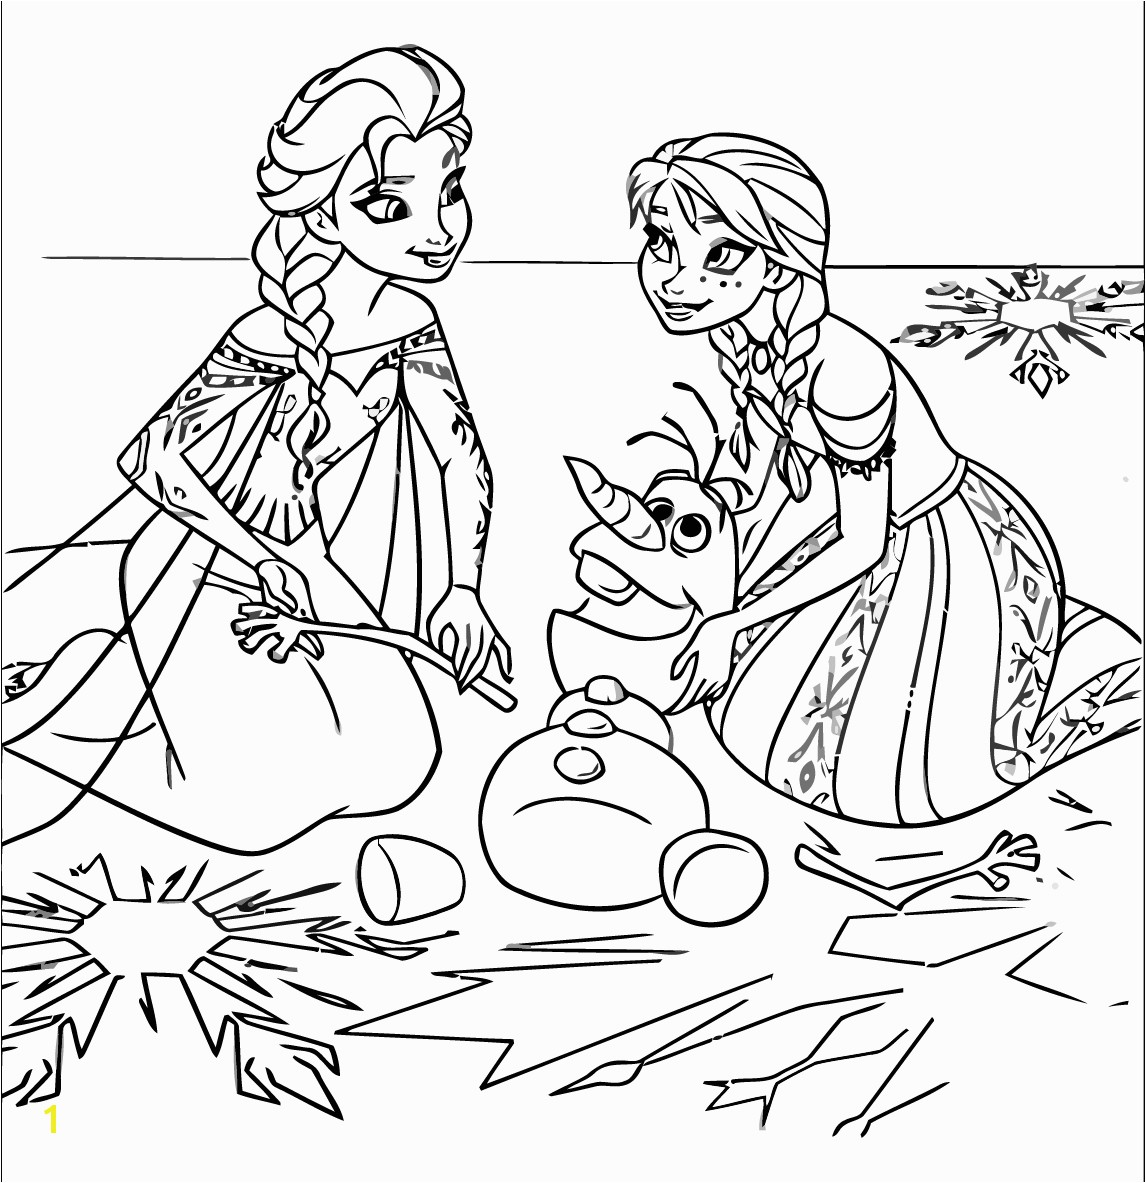 disney frozen coloring pages 7v full size of coloring book and pages frozen printable coloring pagese anna and elsa printabledisney